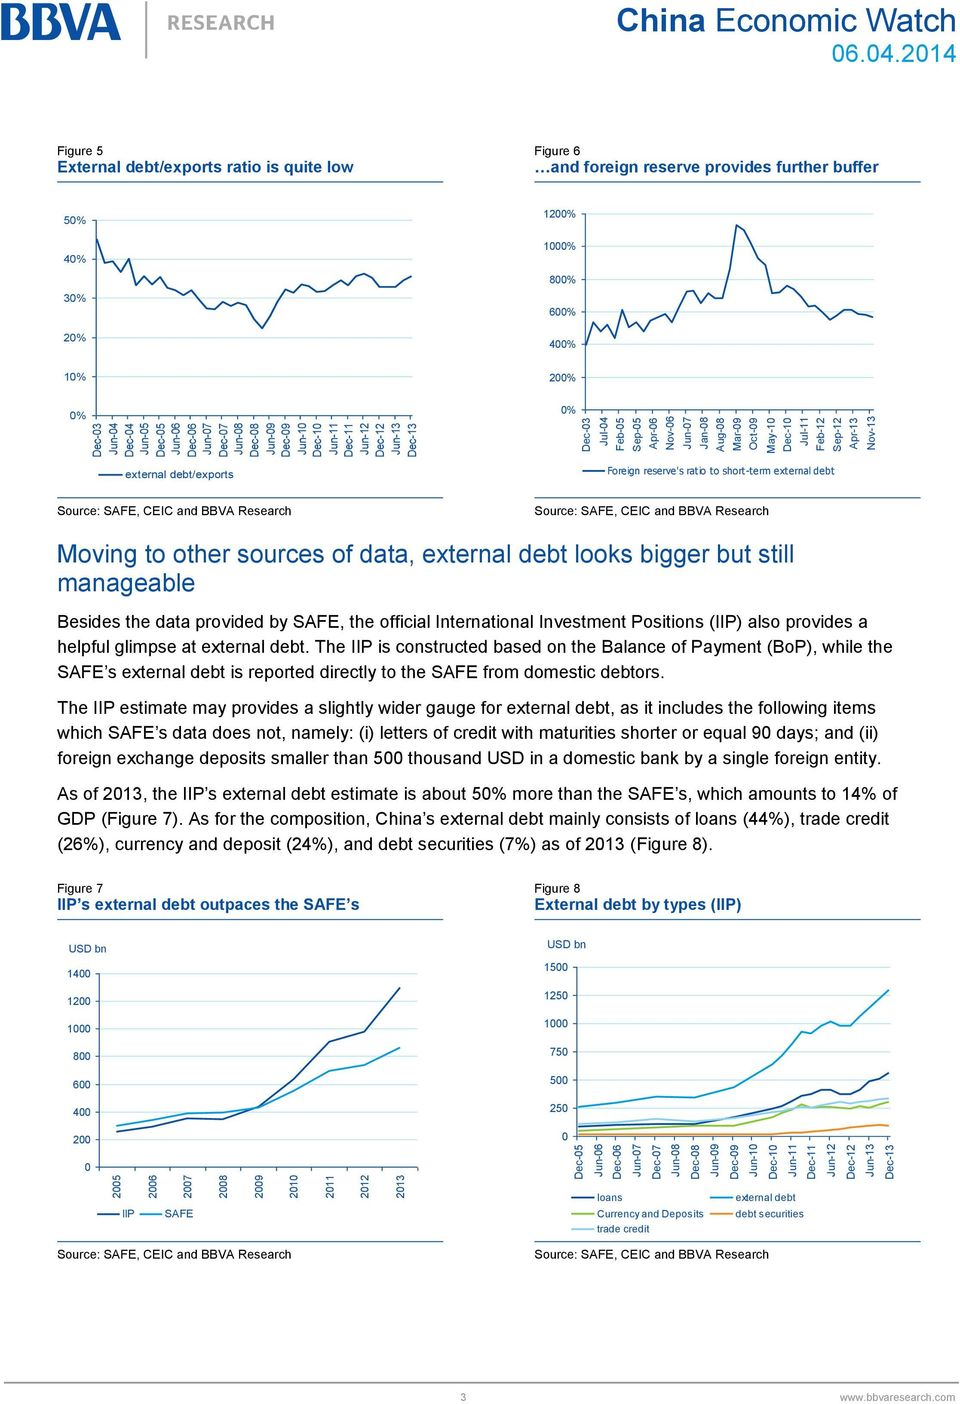 reserve provides further buffer 5 4 3 2 12 1 8 6 4 1 2 external debt/exports Foreign reserve's ratio to short-term external debt Moving to other sources of data, external debt looks bigger but still